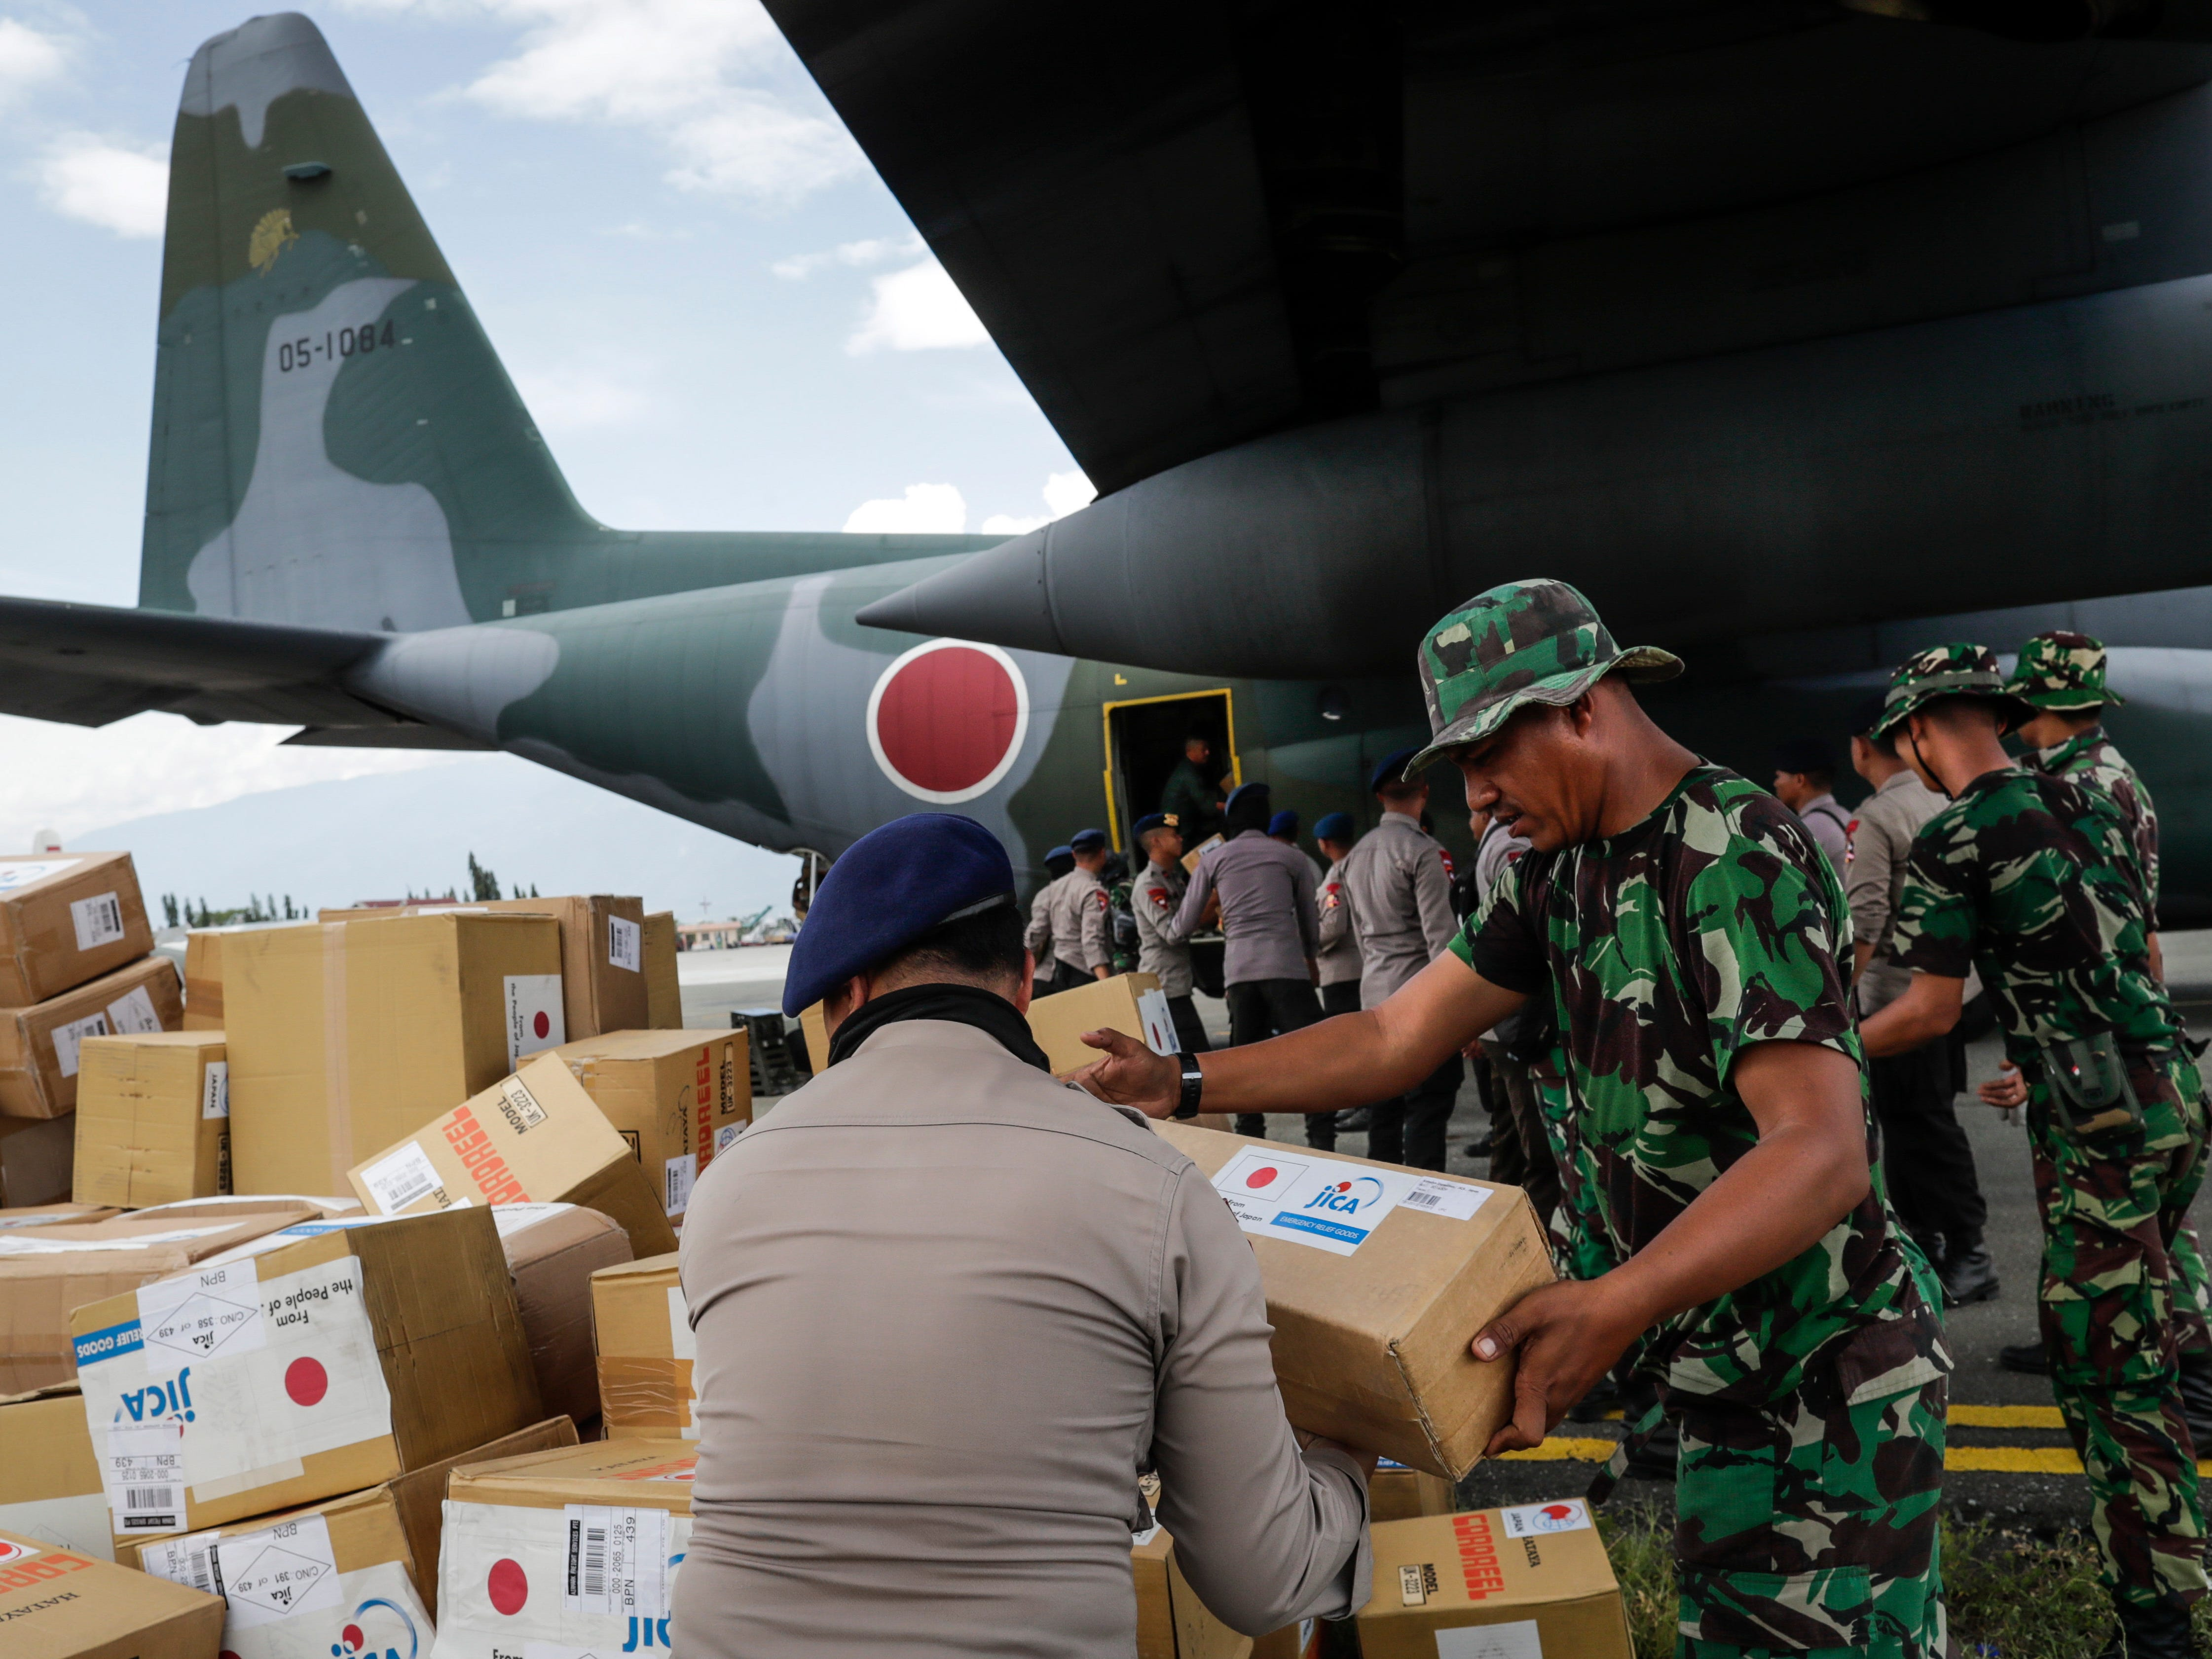 Members of the Japanese and Indonesian military unload humanitarian aid from a Japanese aircraft at the airport in Palu, Central Sulawesi, Indonesia, Oct. 6, 2018.